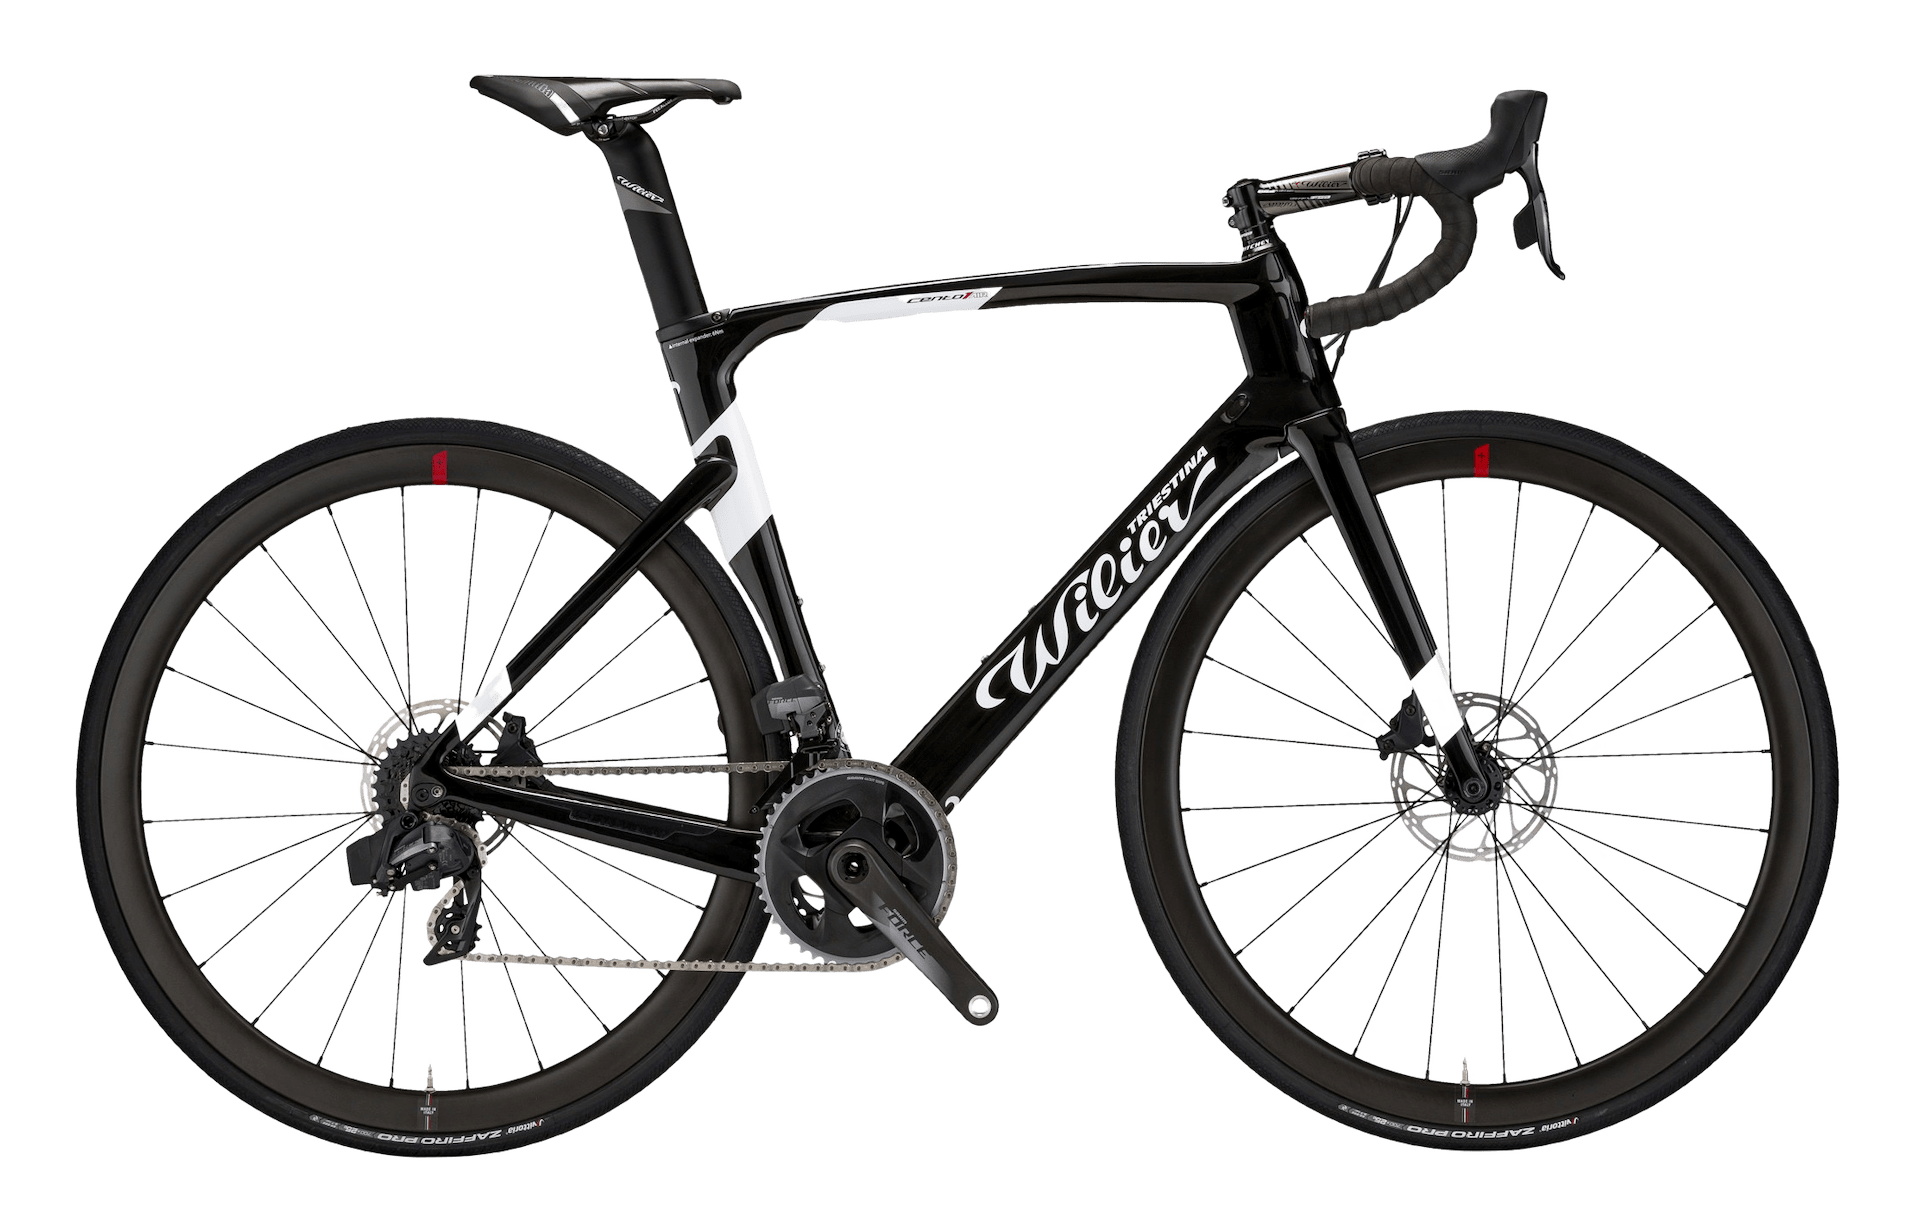 wilier cento 1 air racefiets